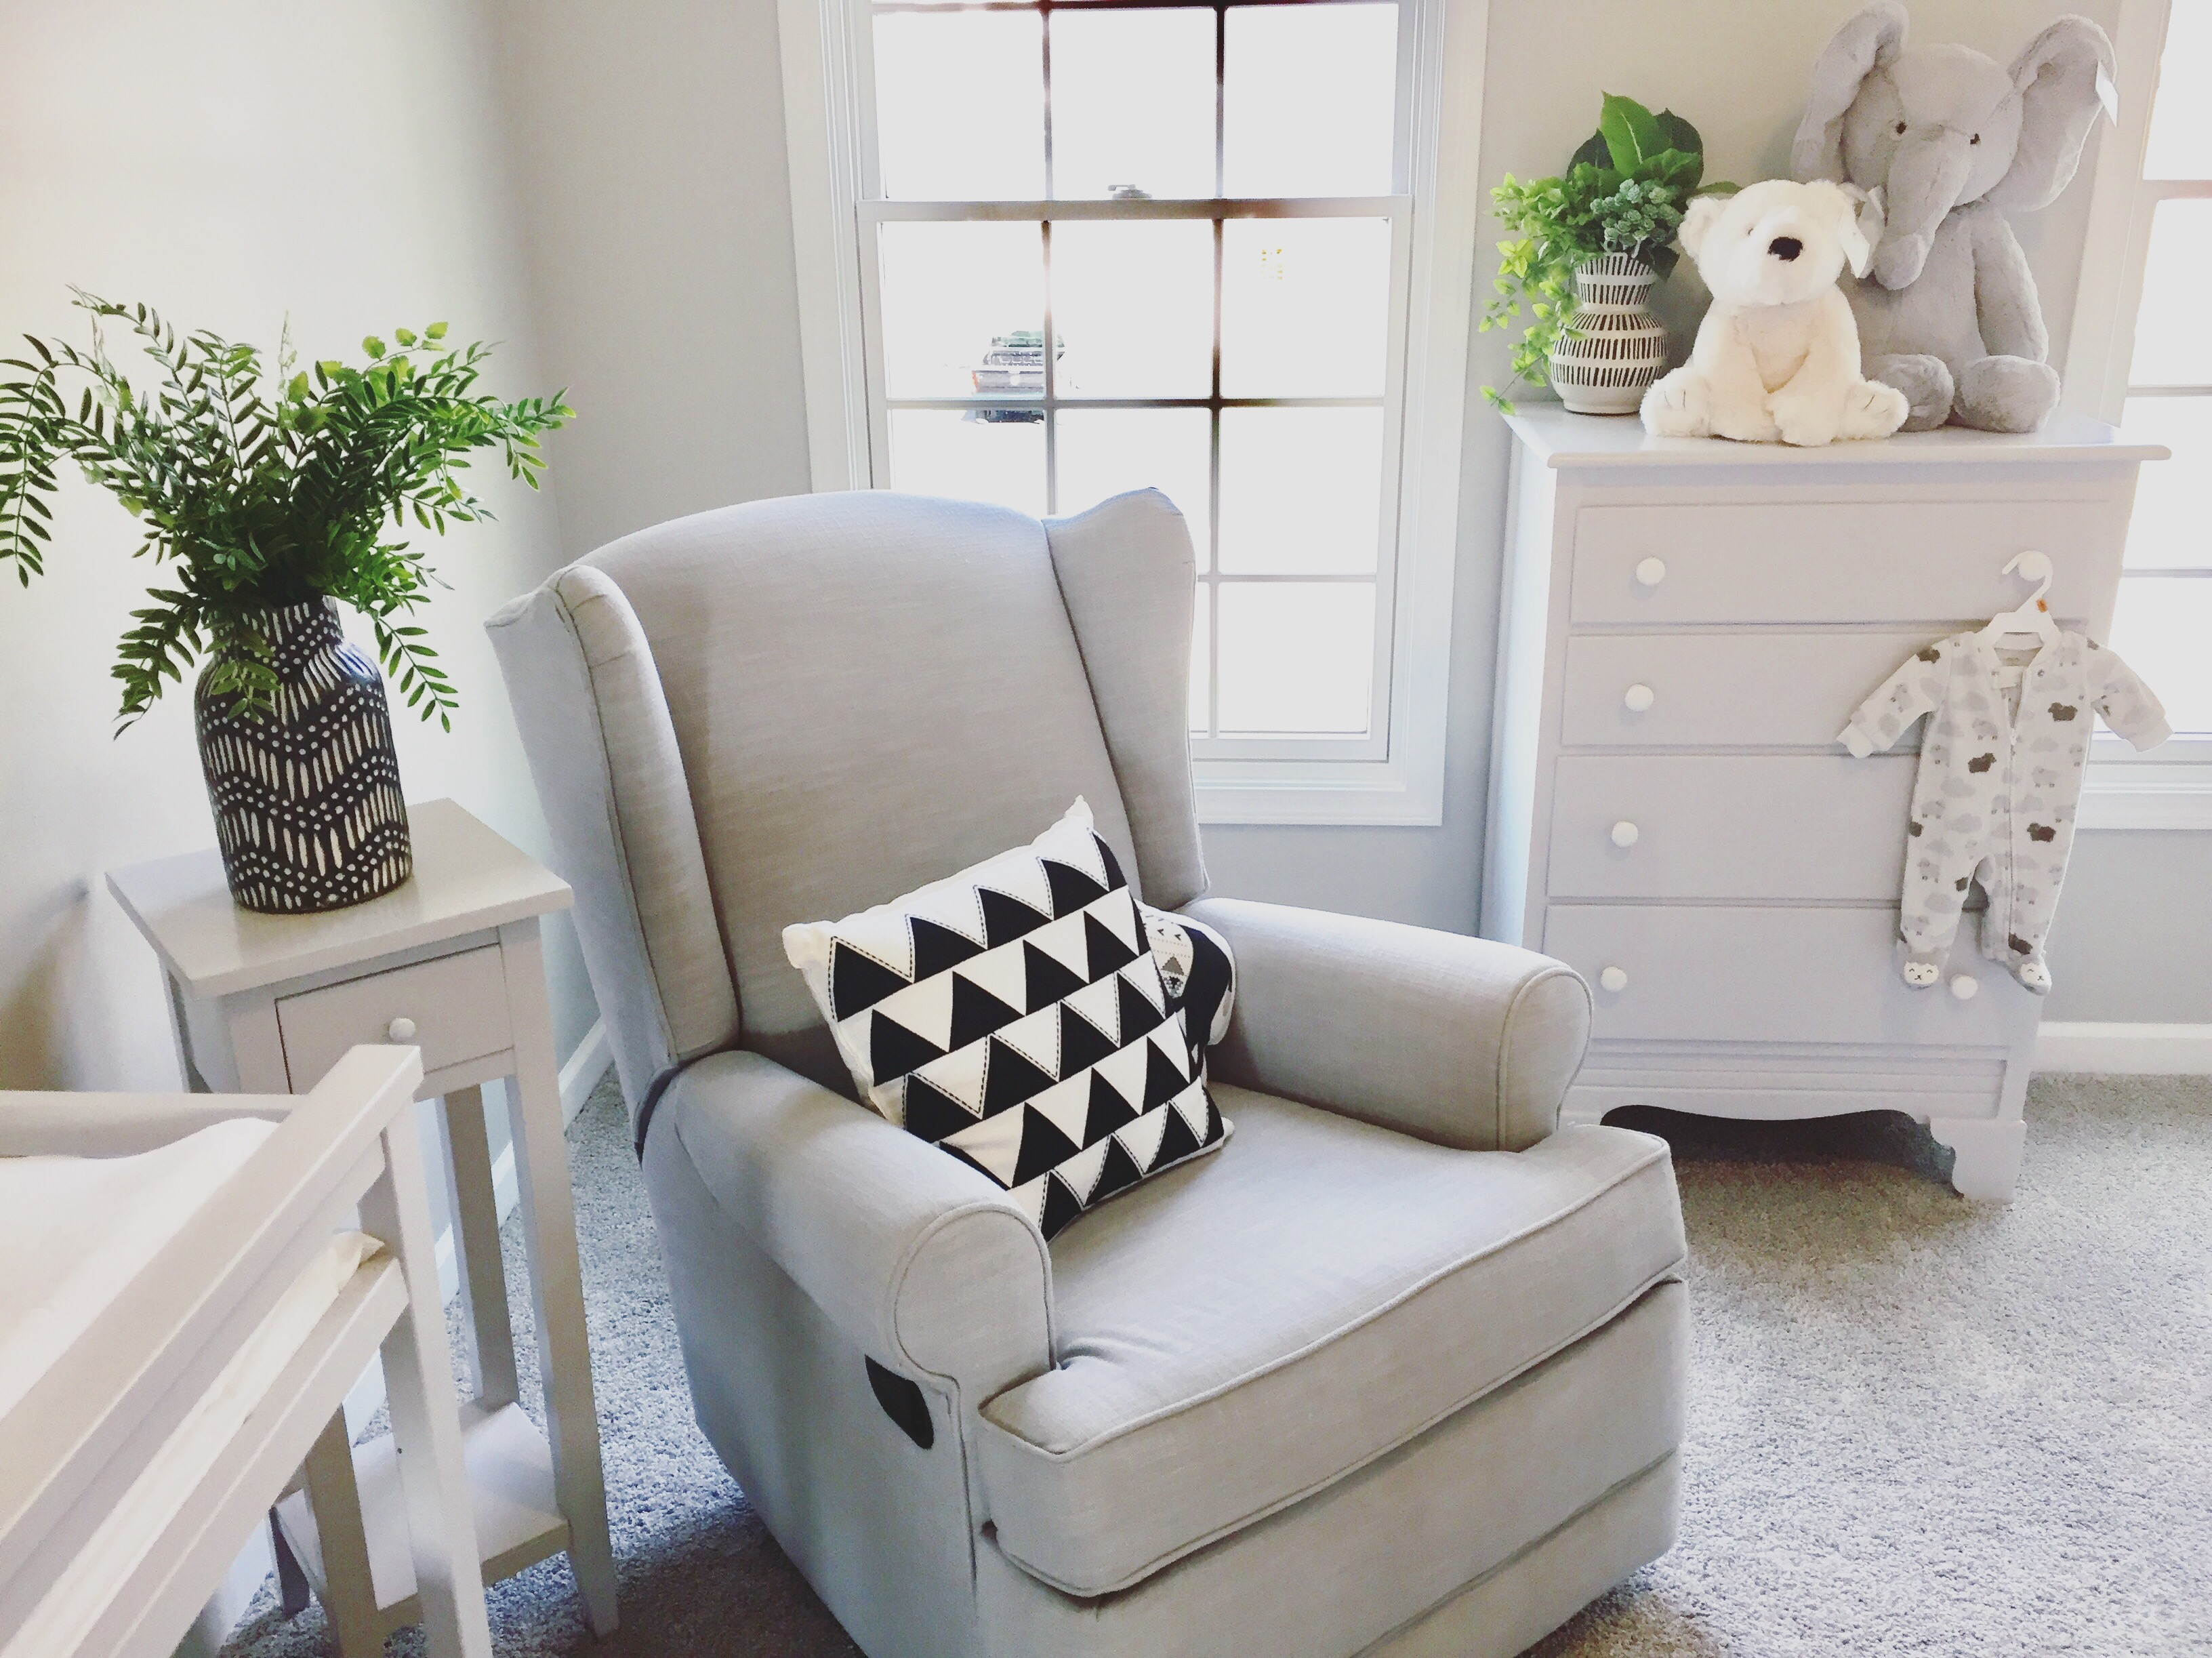 Early On Last Summer, We Knew We Wanted To Do A Monochromatic Room With  Greys, Whites, And Black. Babies See Blacks And Whites In Their Early Weeks  And ...